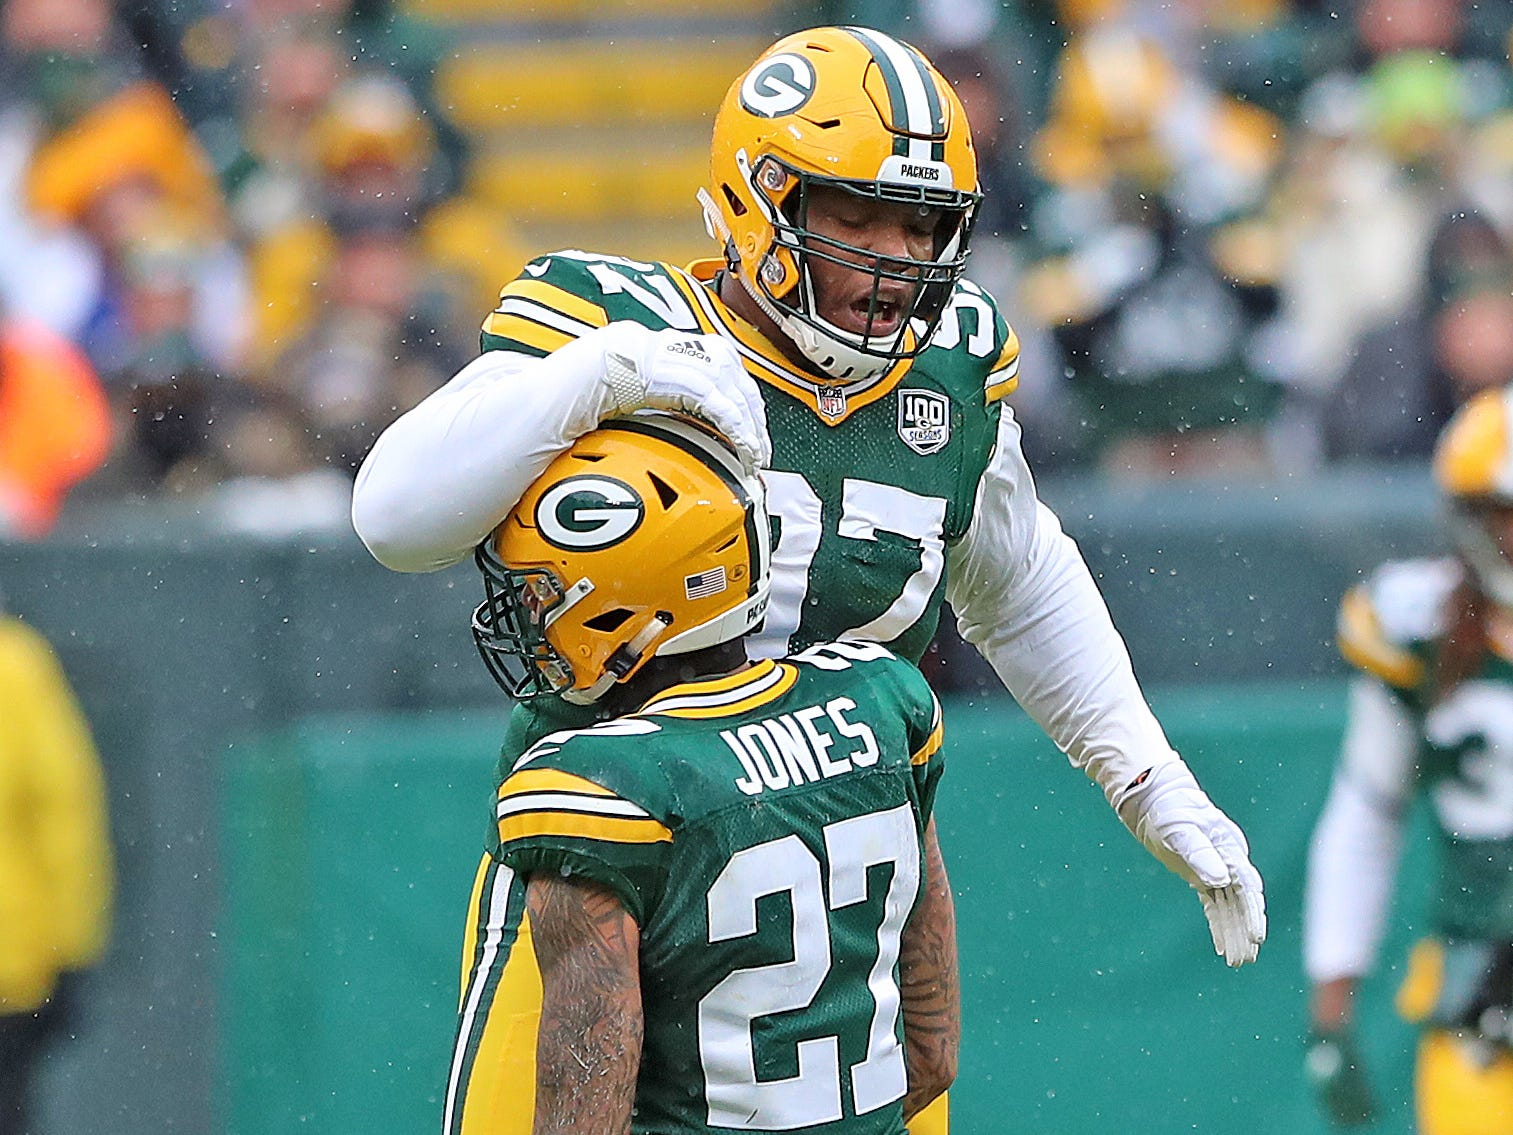 Green Bay Packers nose tackle Kenny Clark (97) celebrates with defensive back Josh Jones (27) after a Jones sack against the Arizona Cardinals Sunday, December 2, 2018 at Lambeau Field in Green Bay, Wis. Jim Matthews/USA TODAY NETWORK-Wis